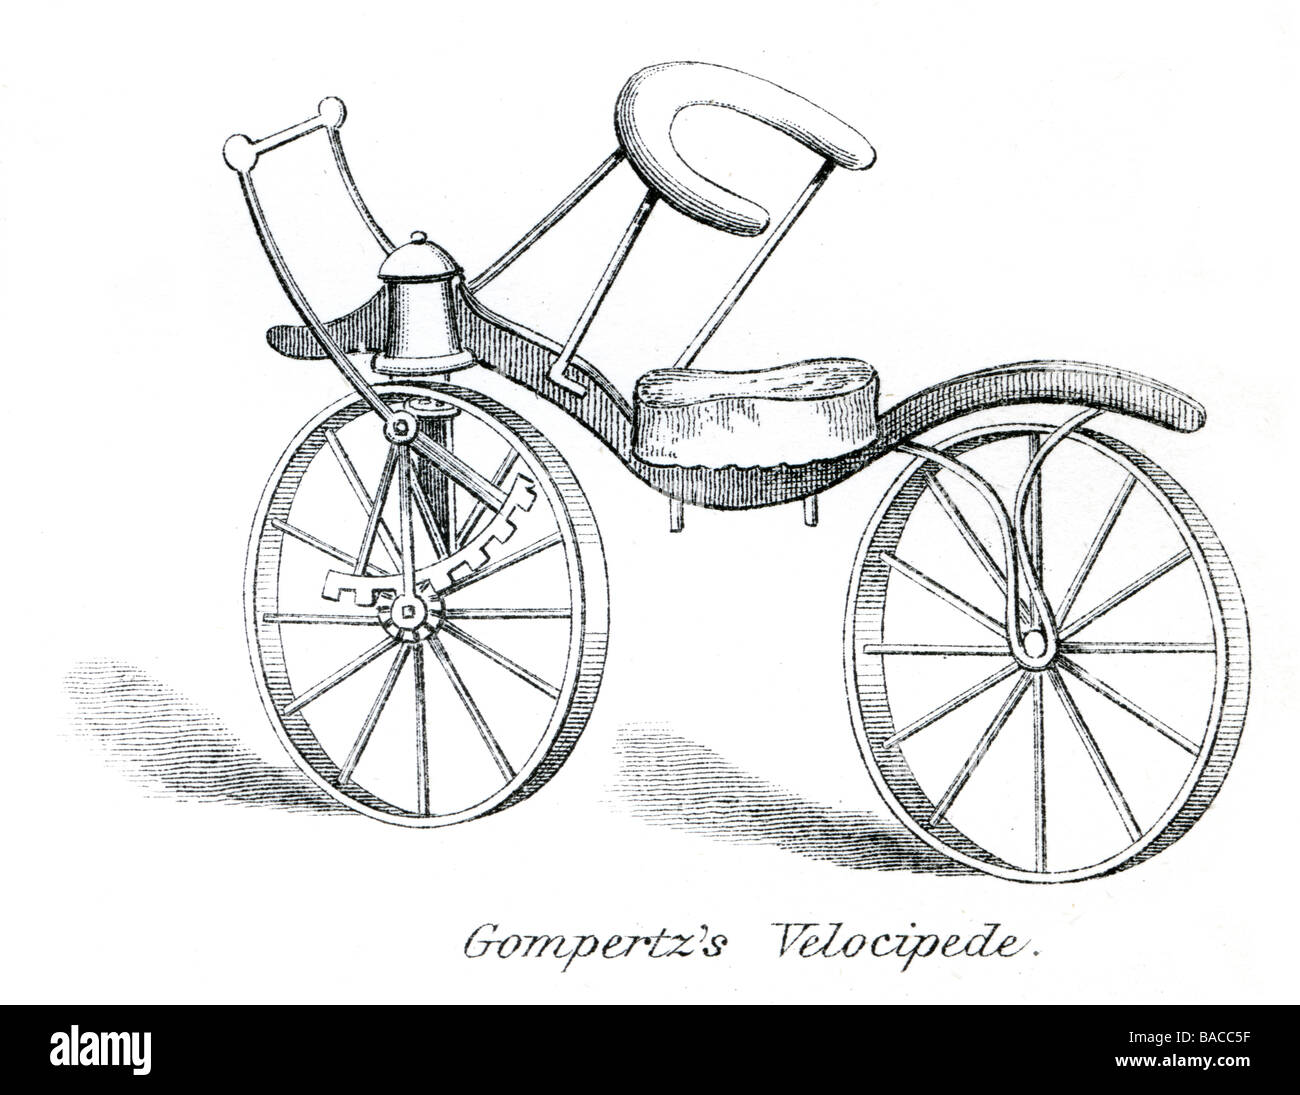 gompertz'z velocipede human-powered vehicles bike bicycle transport two wheels pedals designs - Stock Image